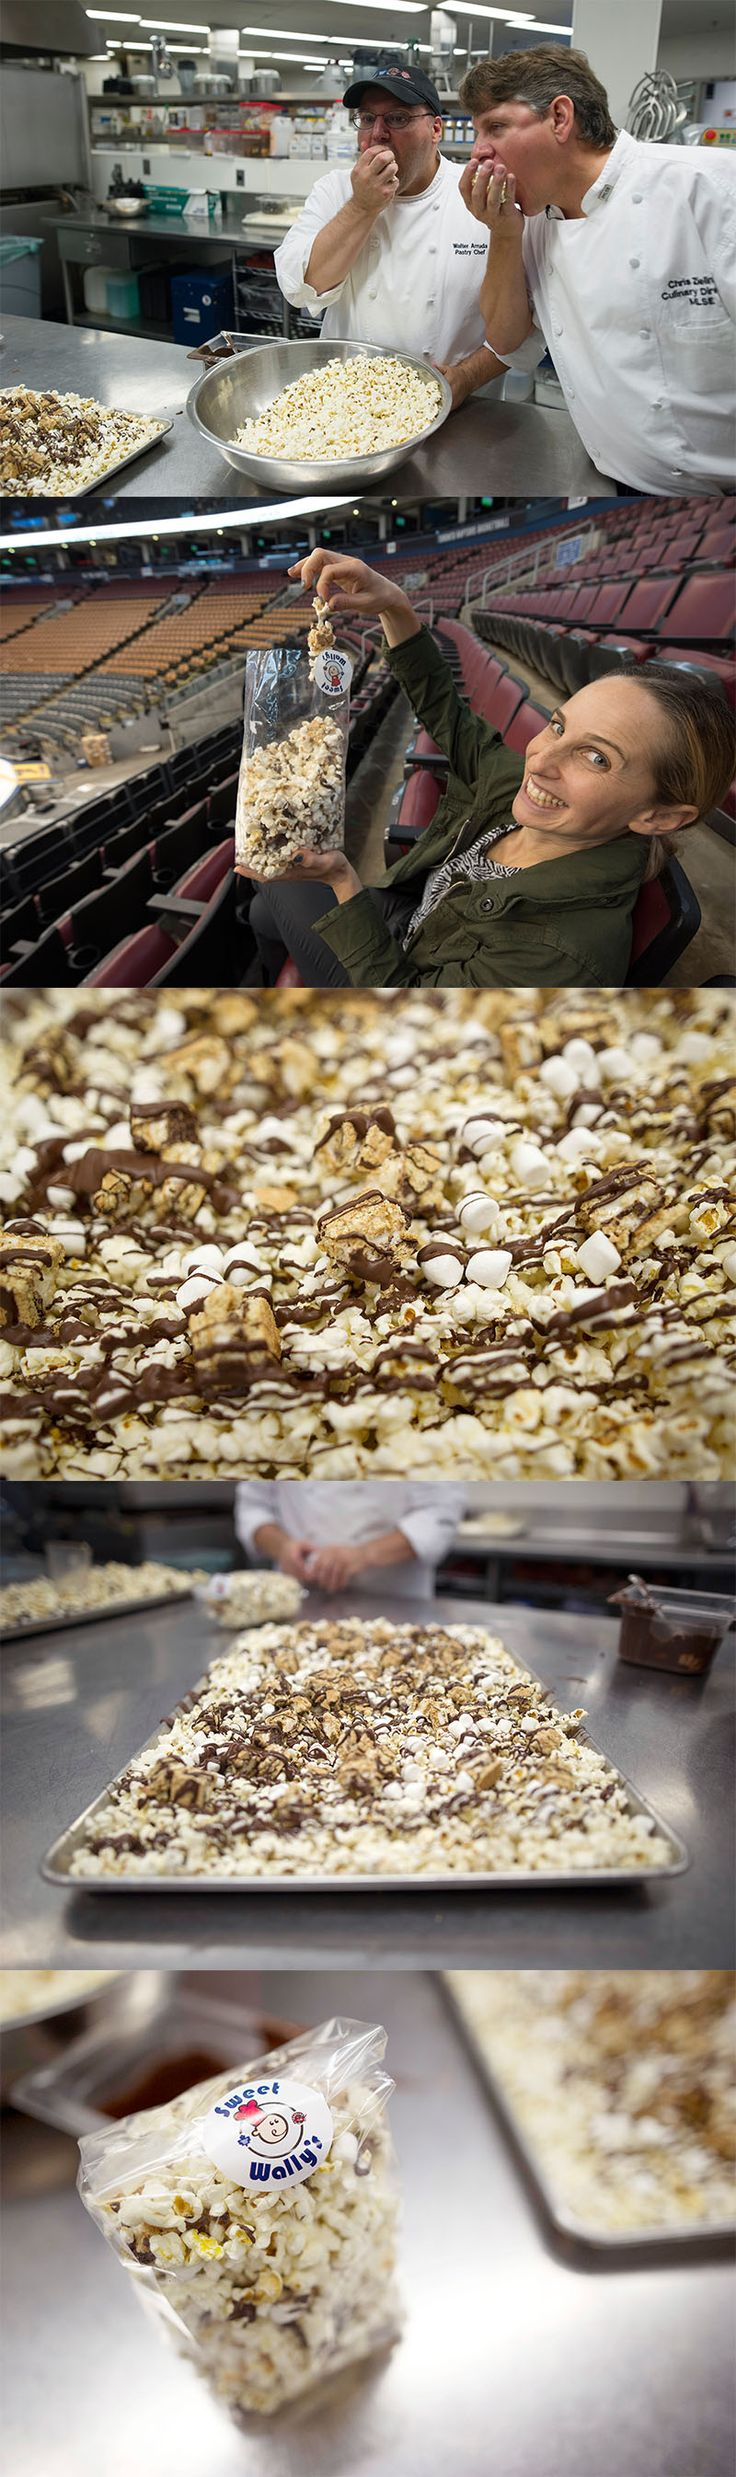 S'mores popcorn, cheeseburger 'fries': MLSE launches new game-day ACC concession food.